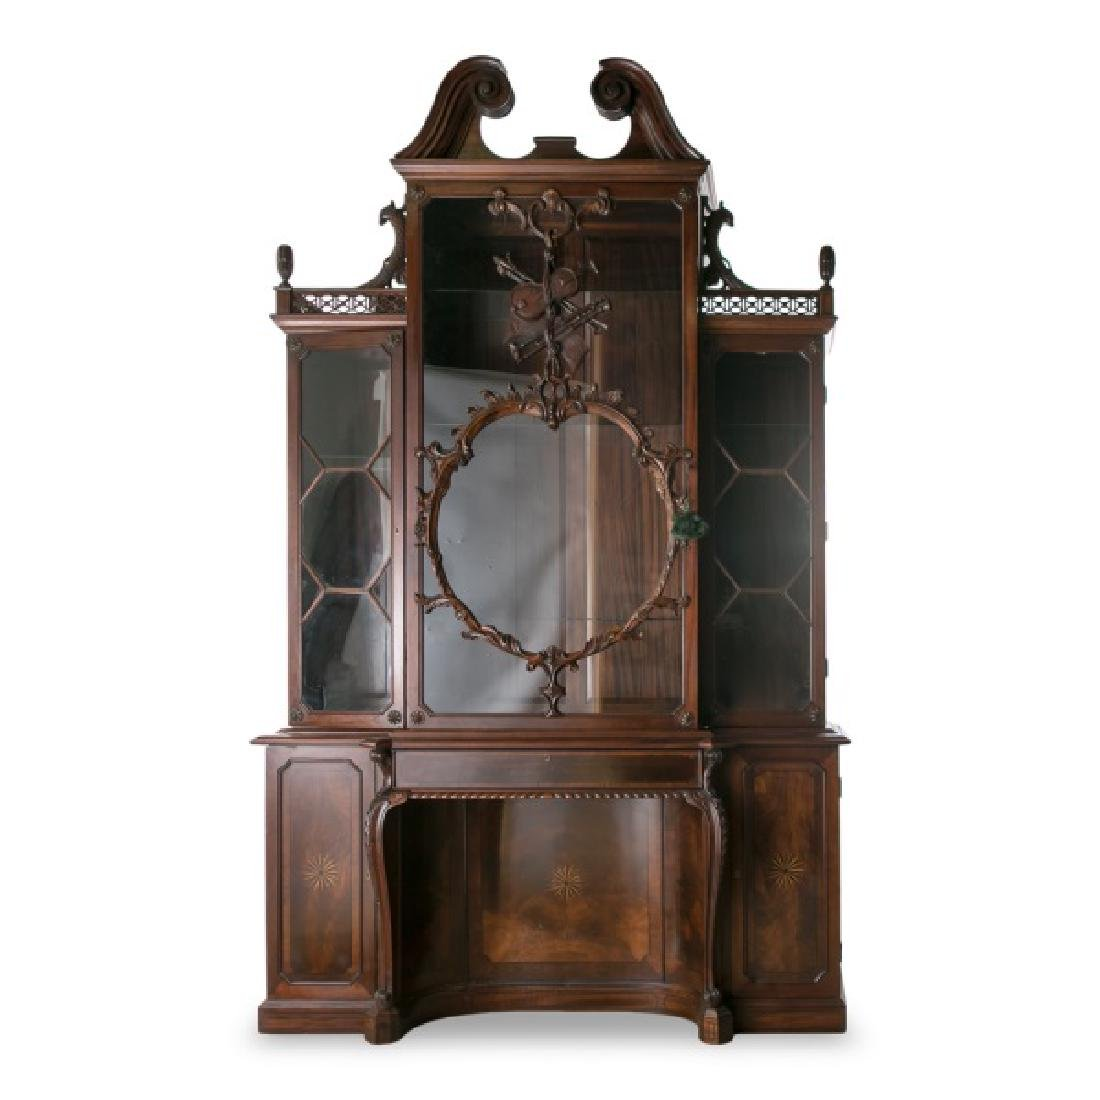 After Thomas Chippendale, Violin Bookcase of 1763